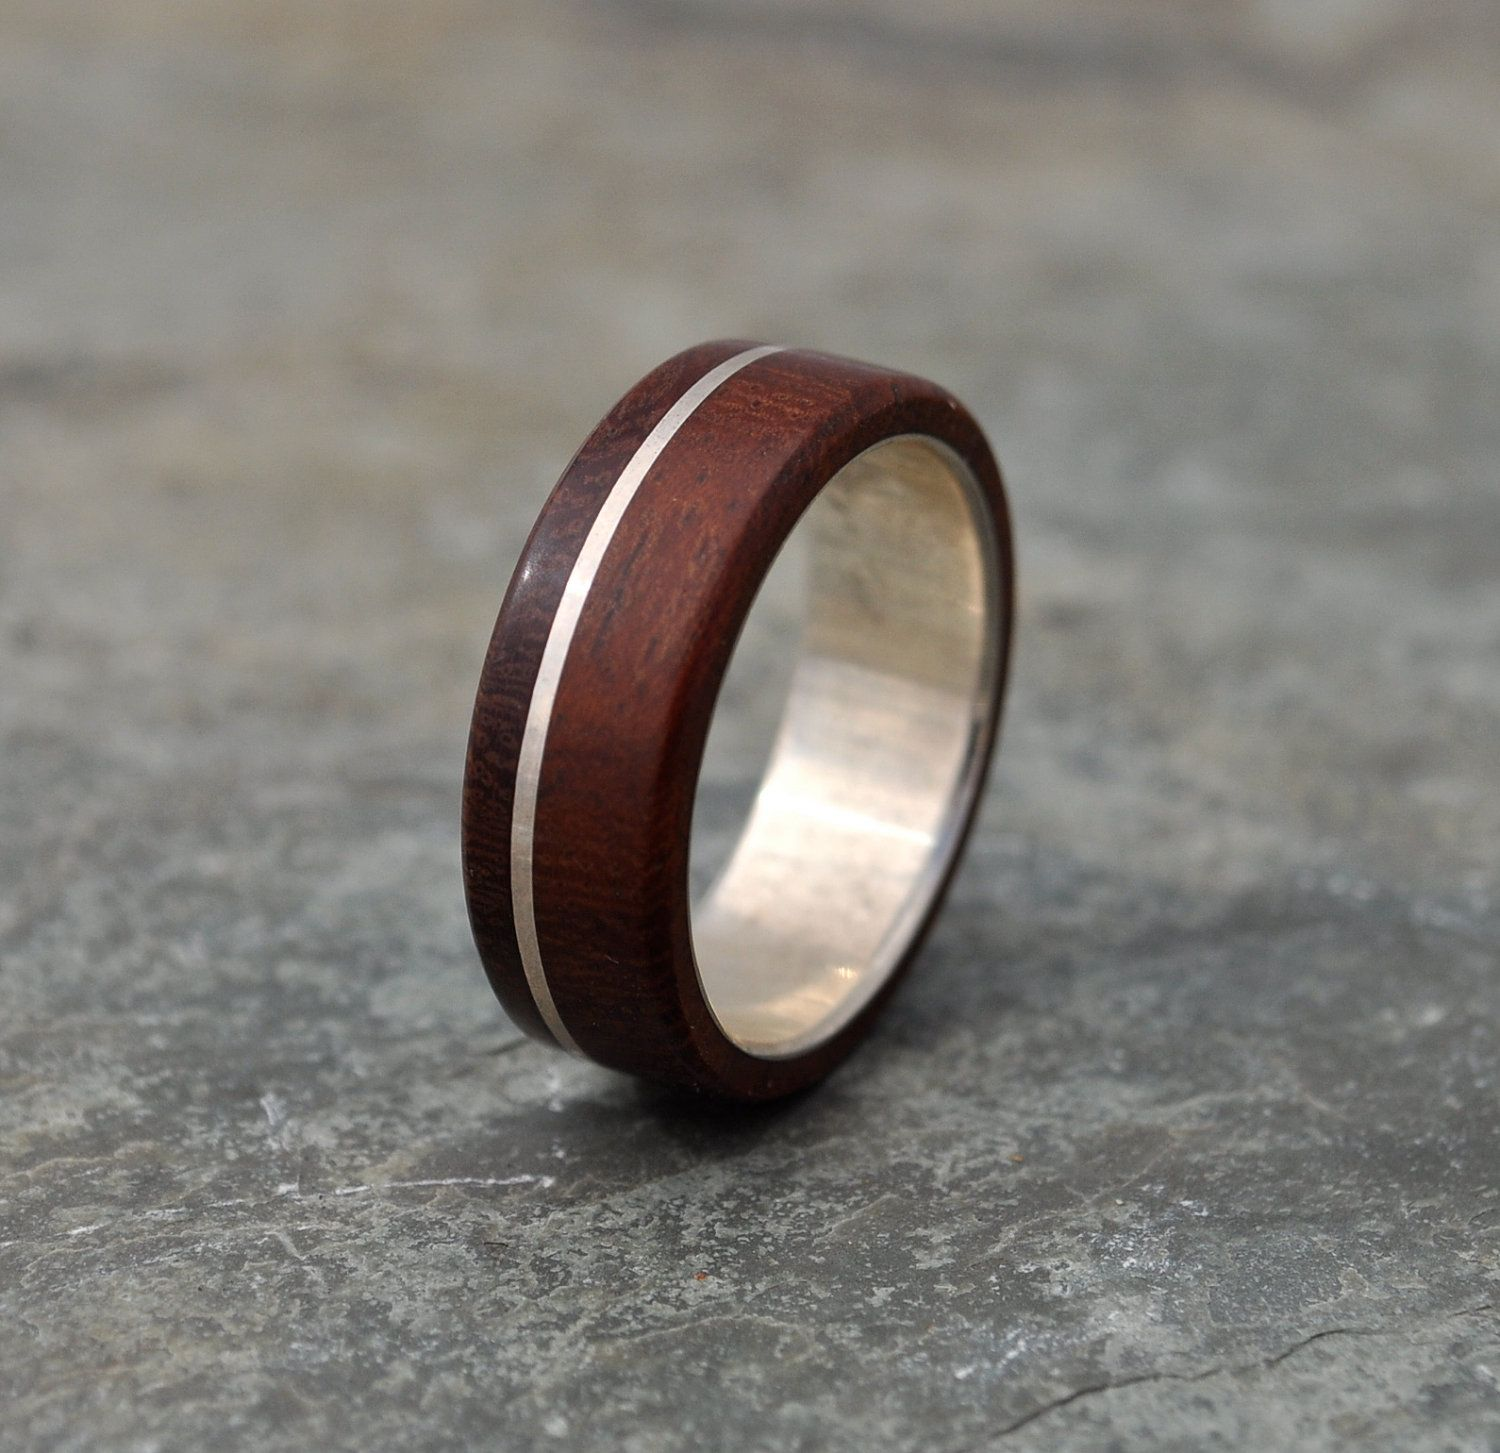 fairtrade wedding diamond ring royal rings pqodnny trade ethical promise oak sustainable engagement beautiful fair